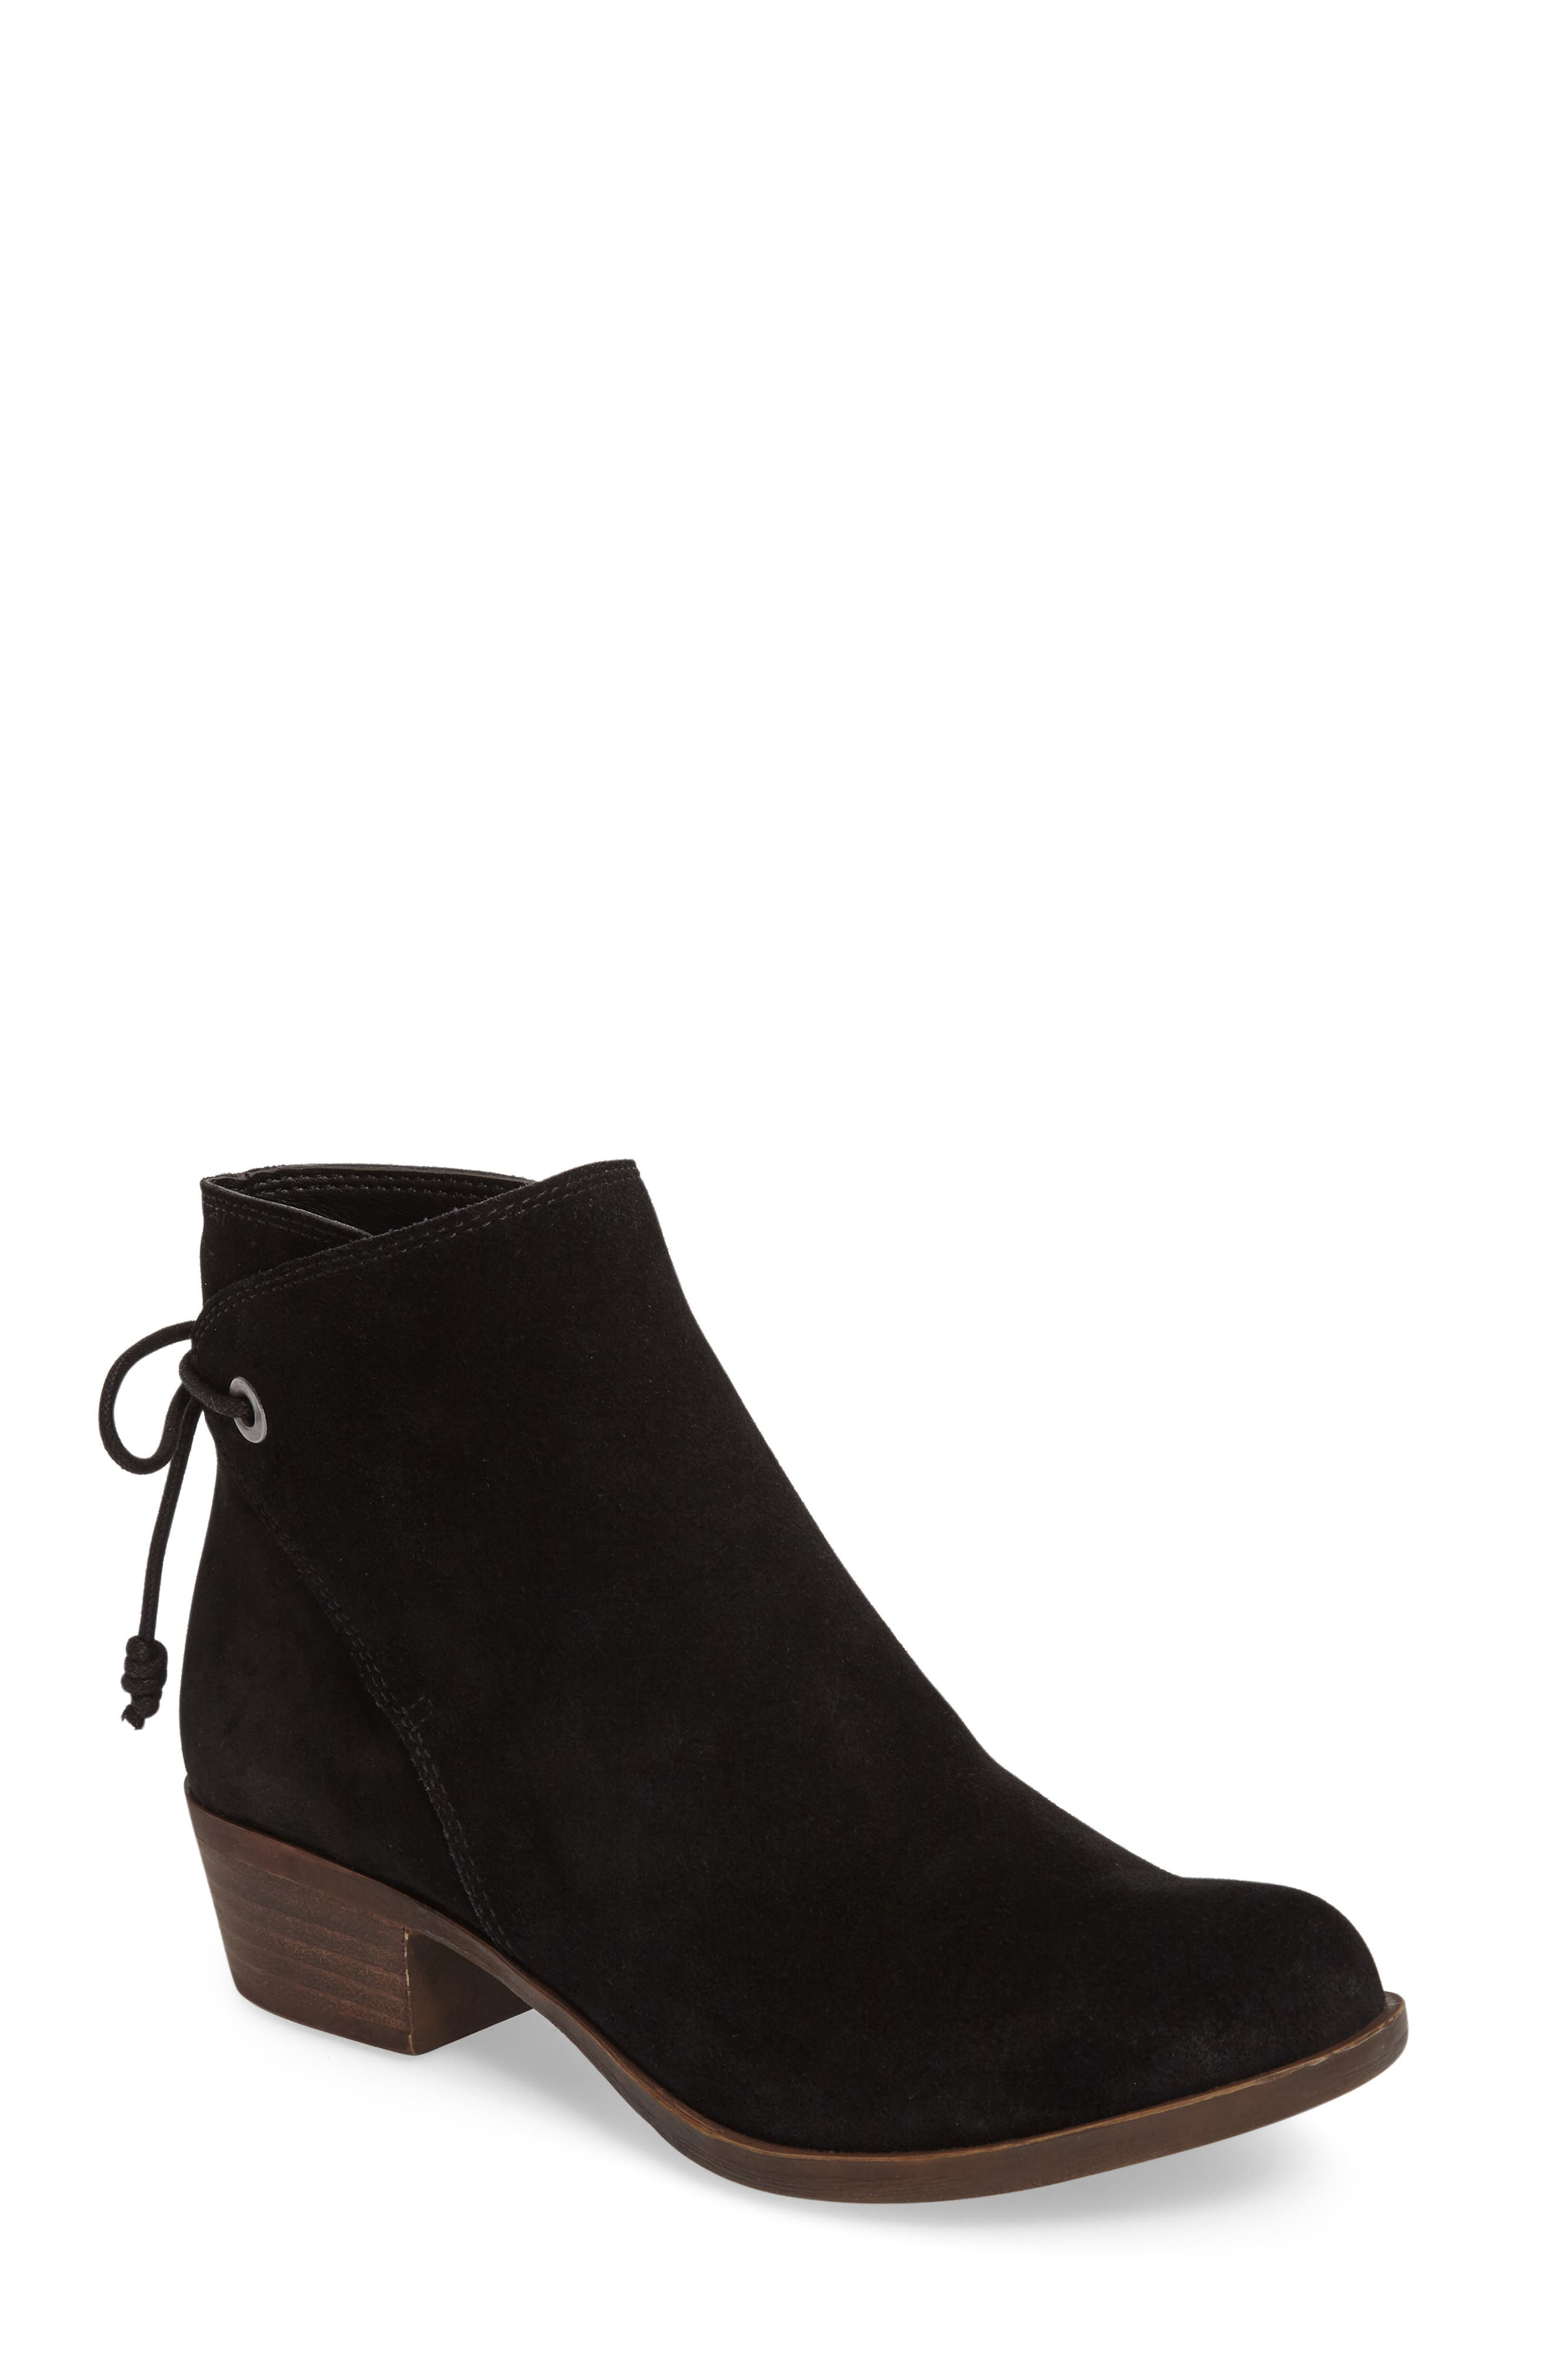 Gwenore Tie Bootie,                             Main thumbnail 1, color,